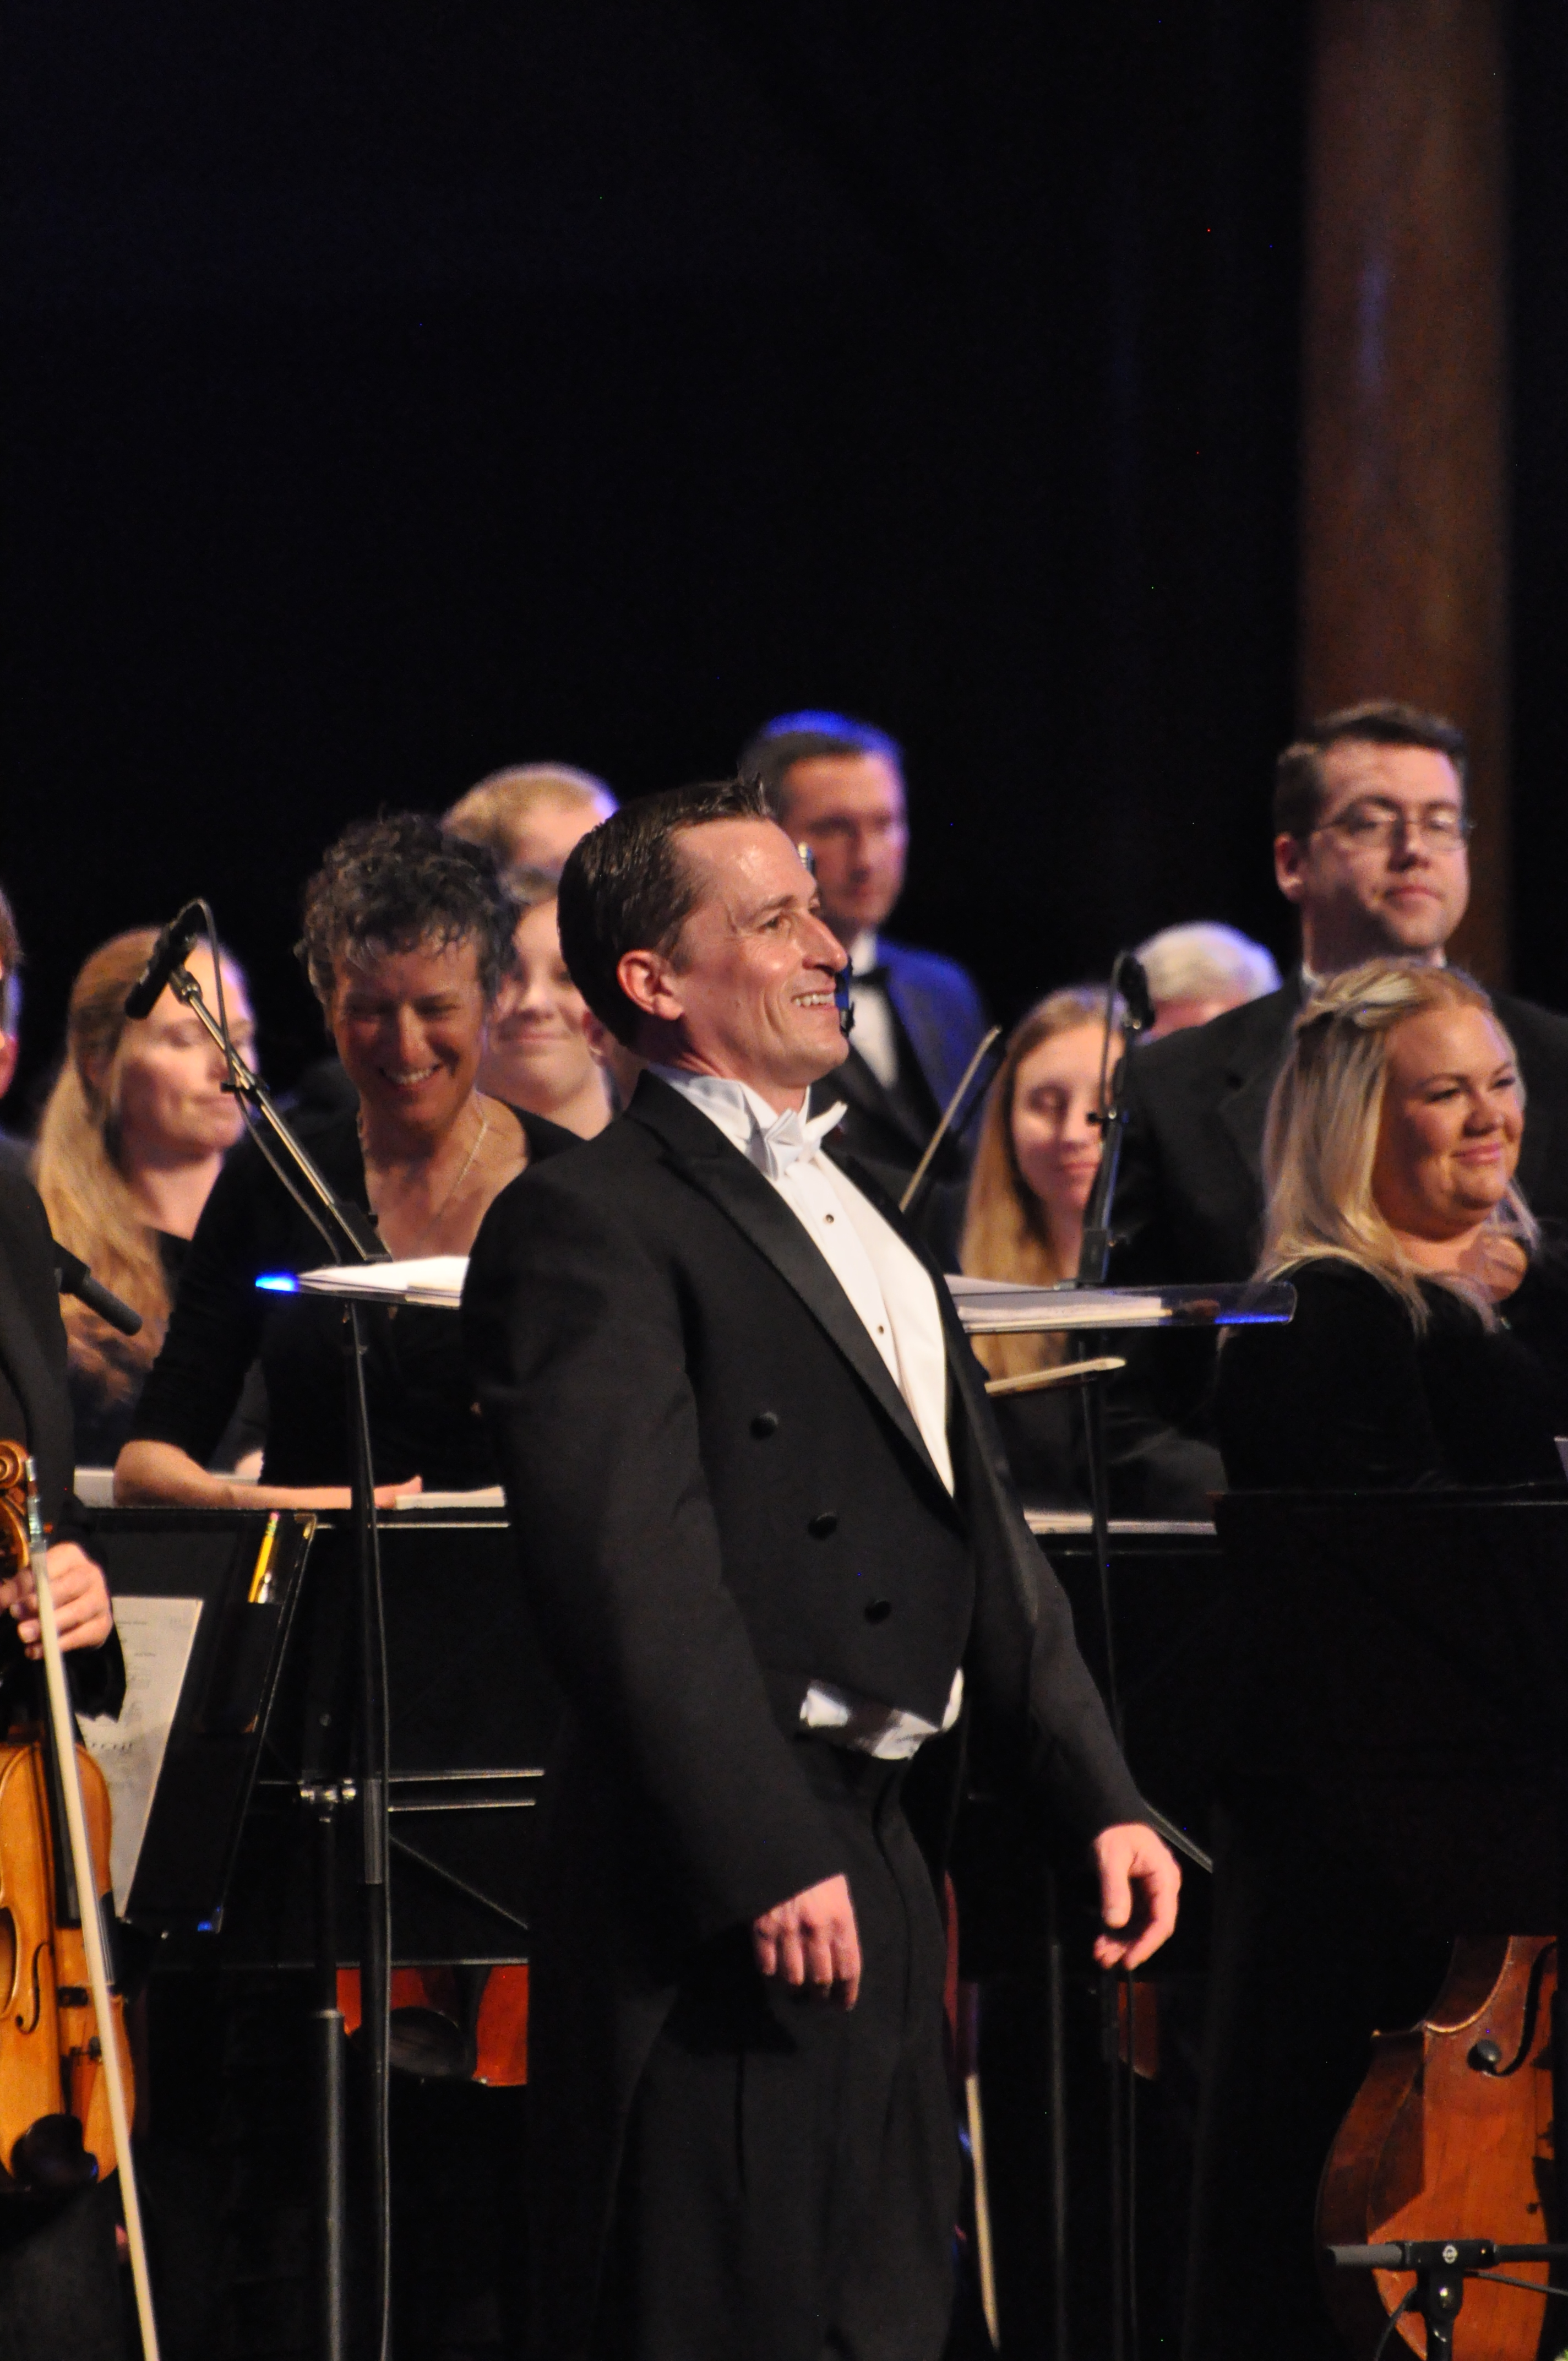 Ryan Murphy stands in front of the Orchestra at Temple Square after a performance on April 30.